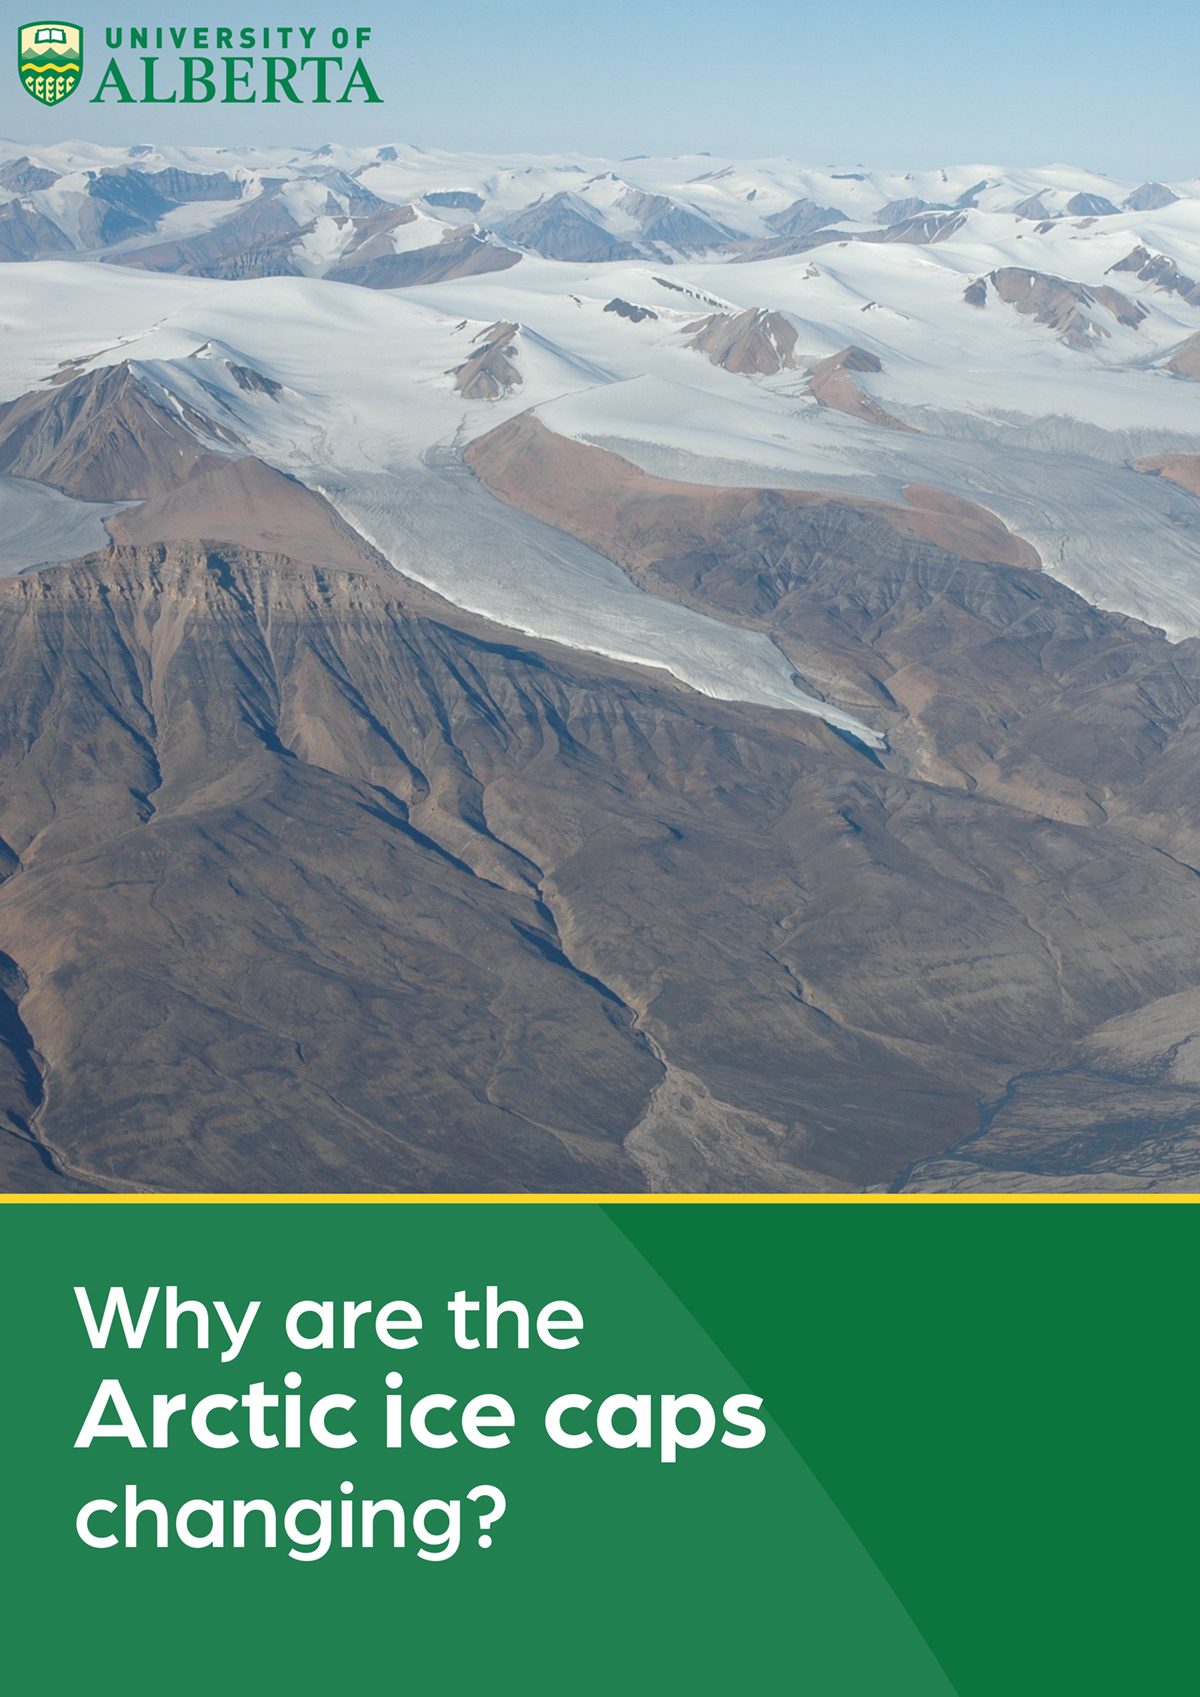 arctic ice caps are changing